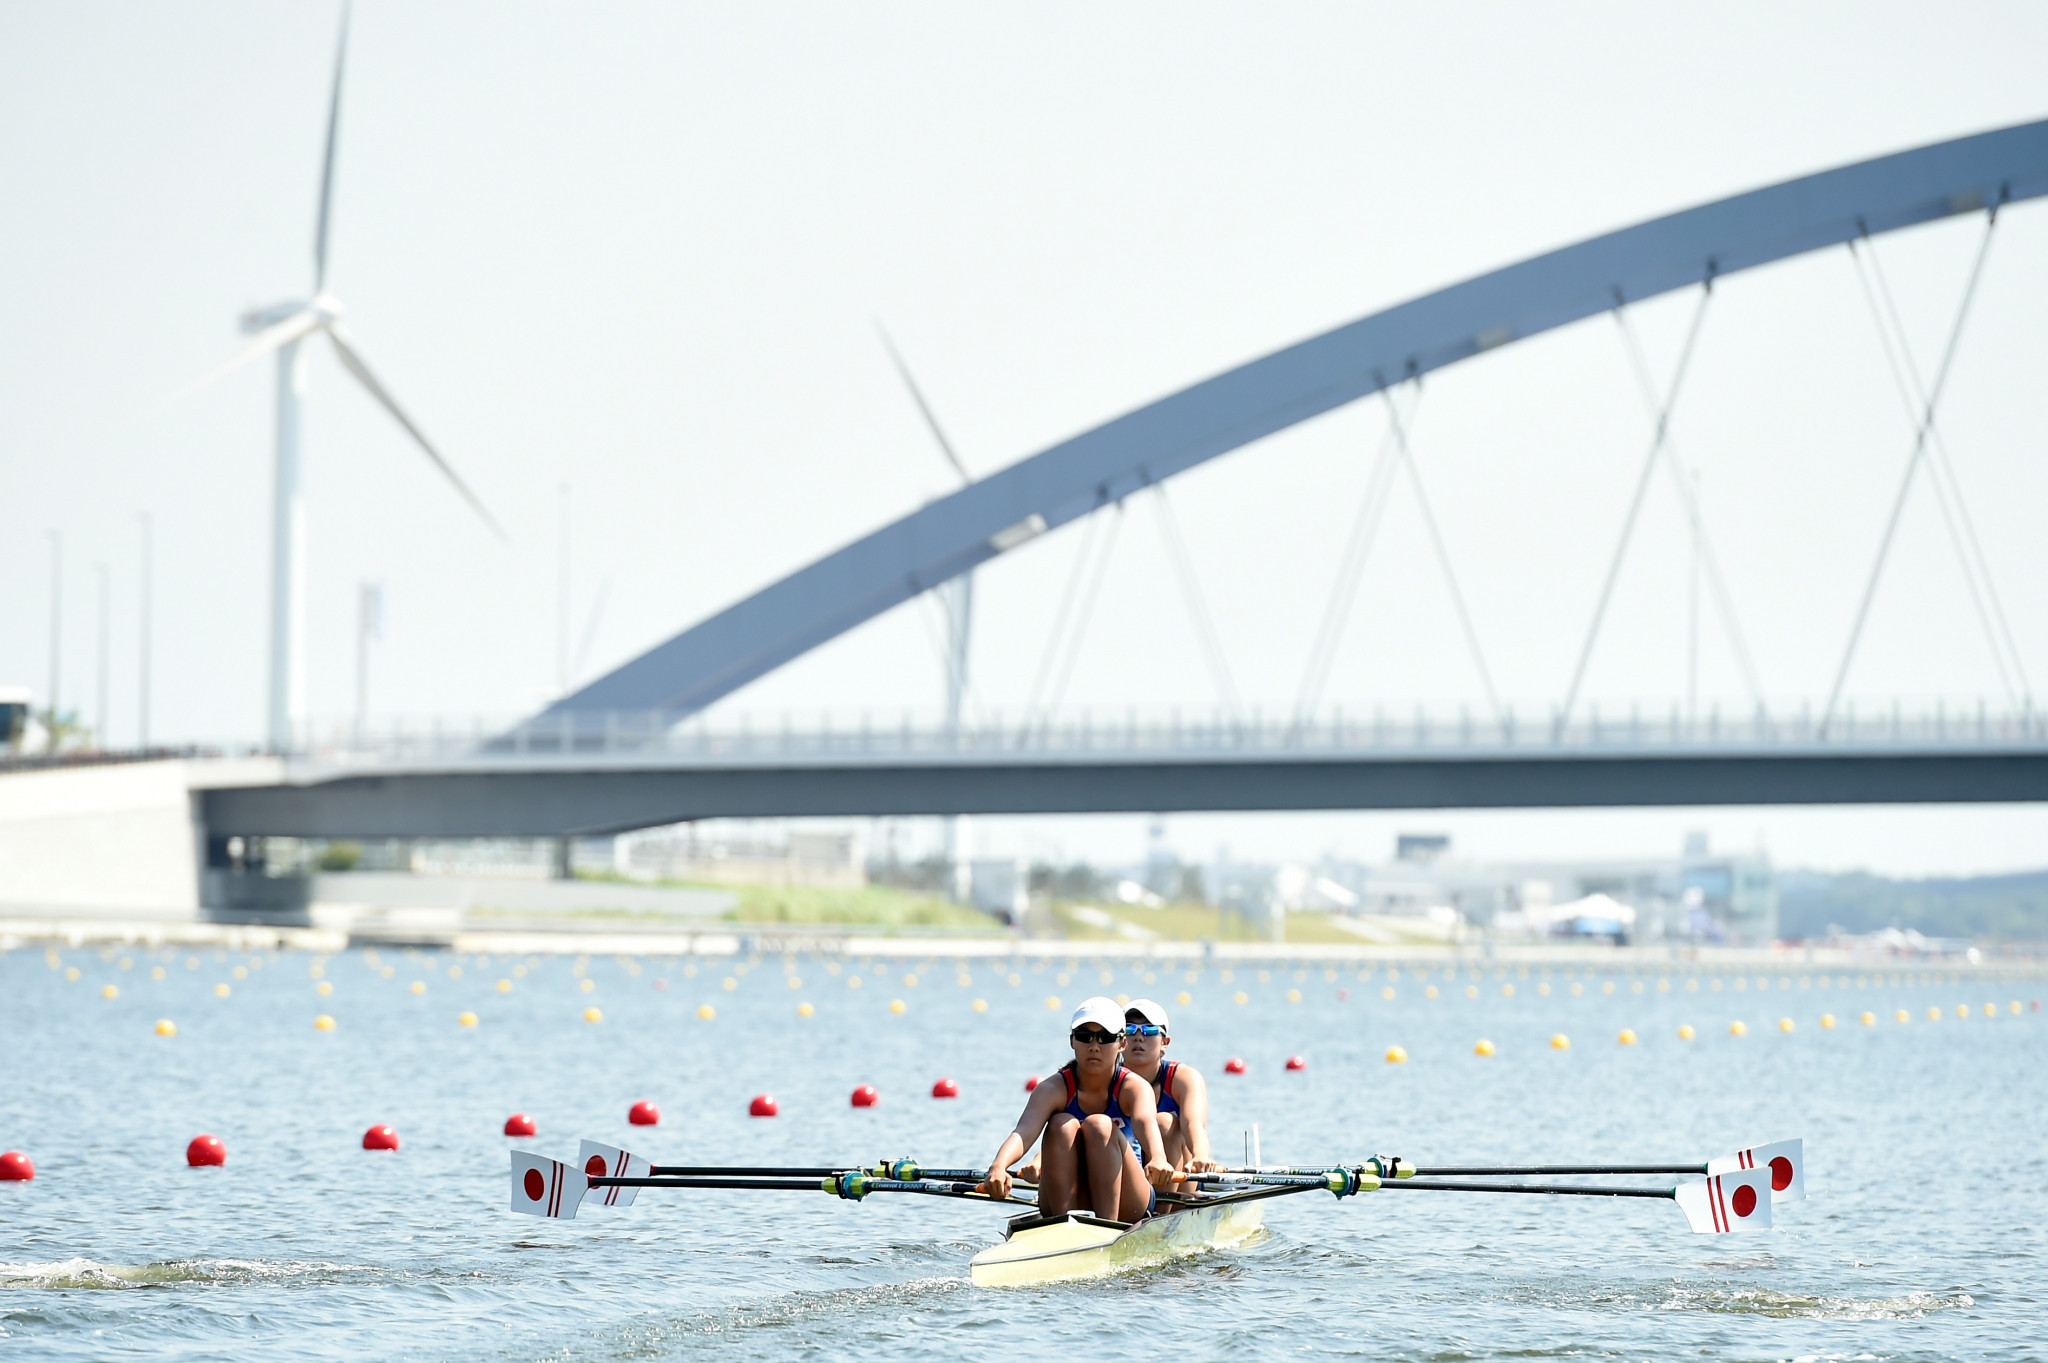 World Rowing confirm Tokyo as host of Asia and Oceania Olympic qualifier in May